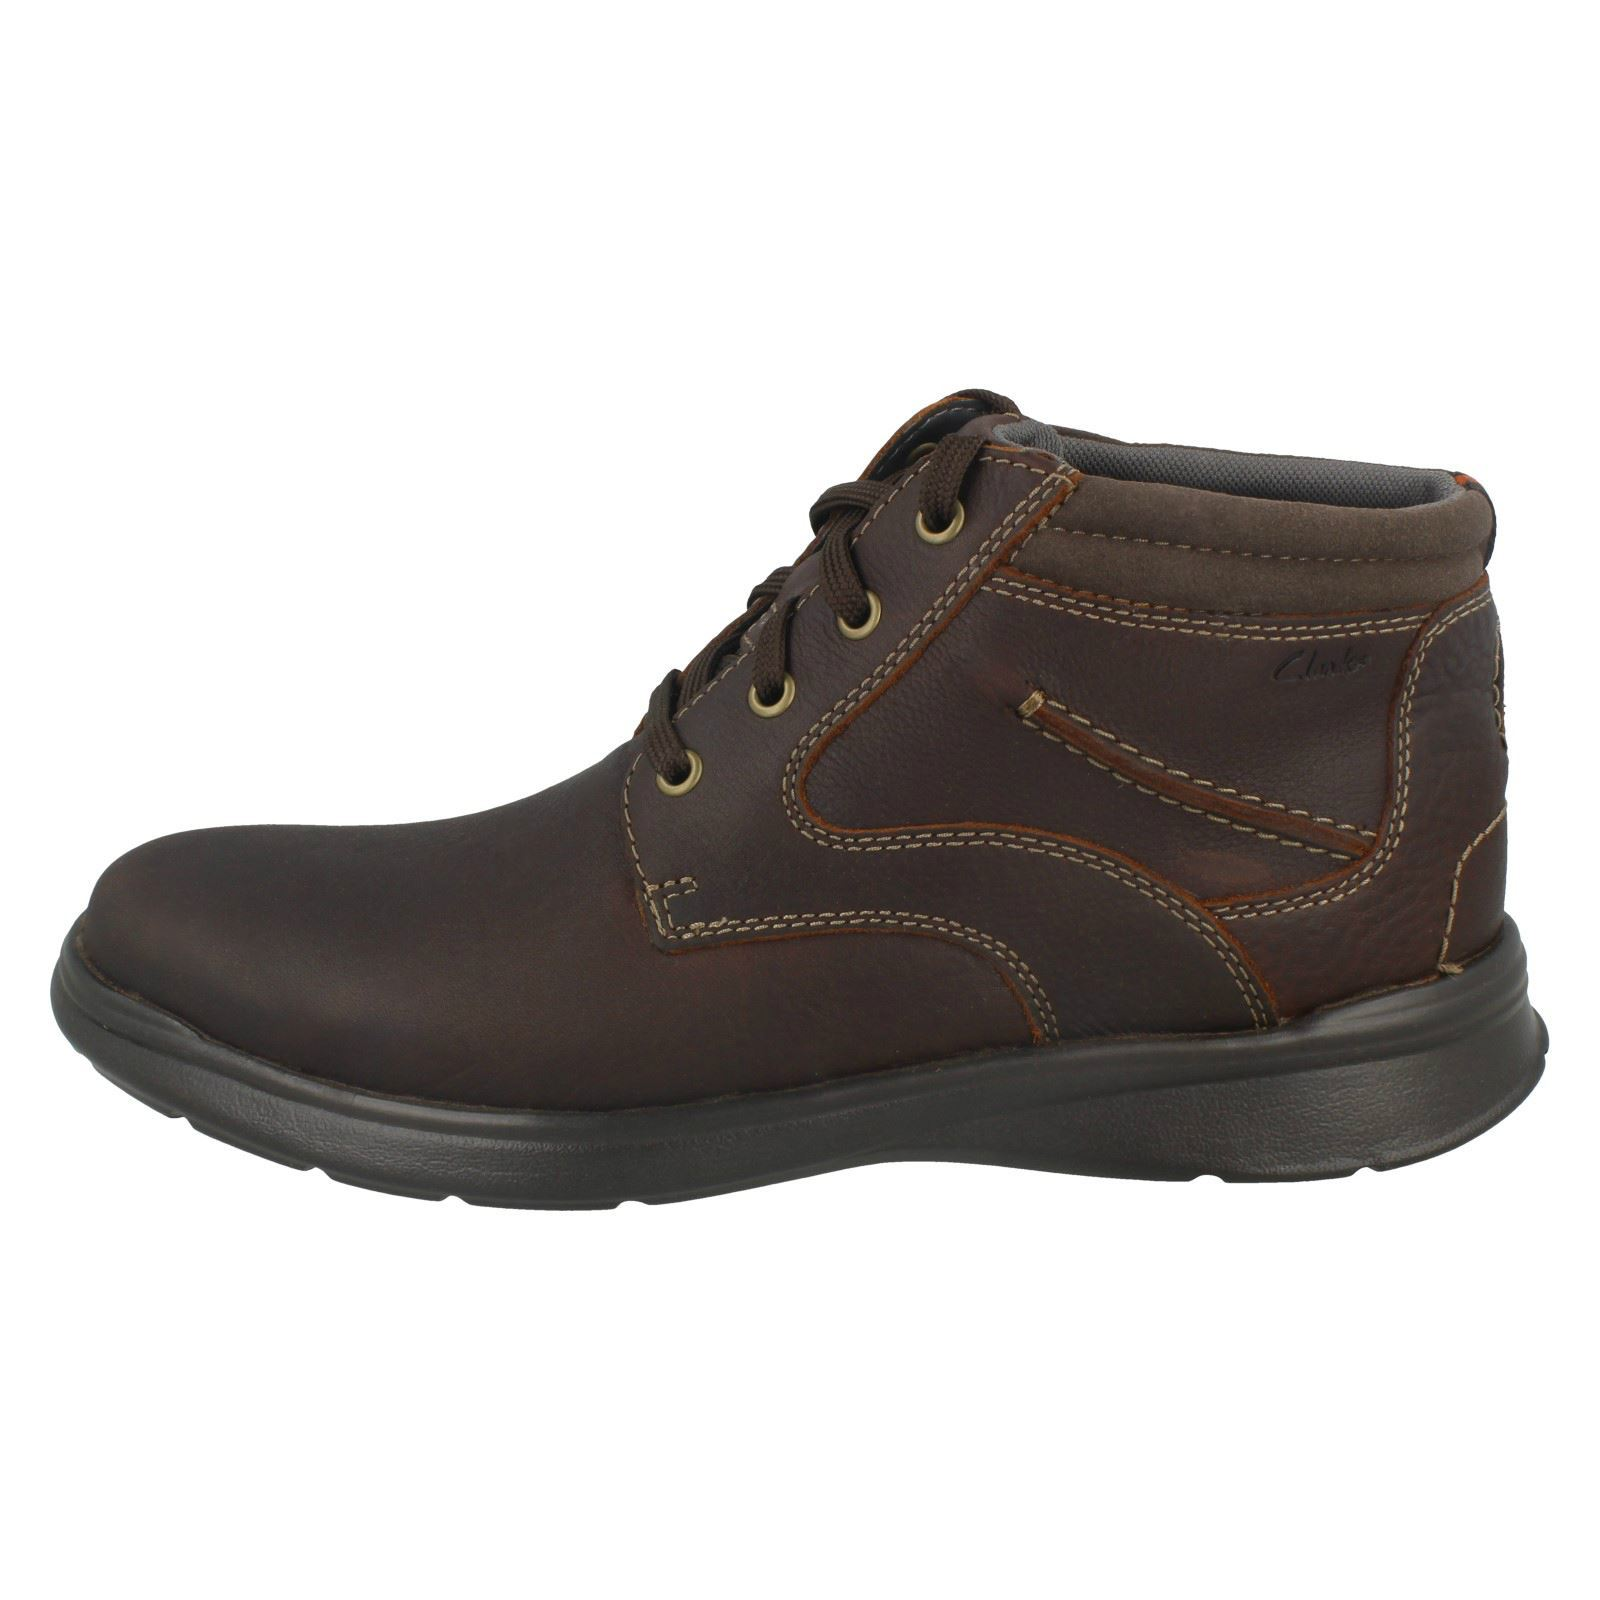 Mens-Clarks-Cotrell-Rise-Casual-Lace-Up-Ankle-Boots thumbnail 12